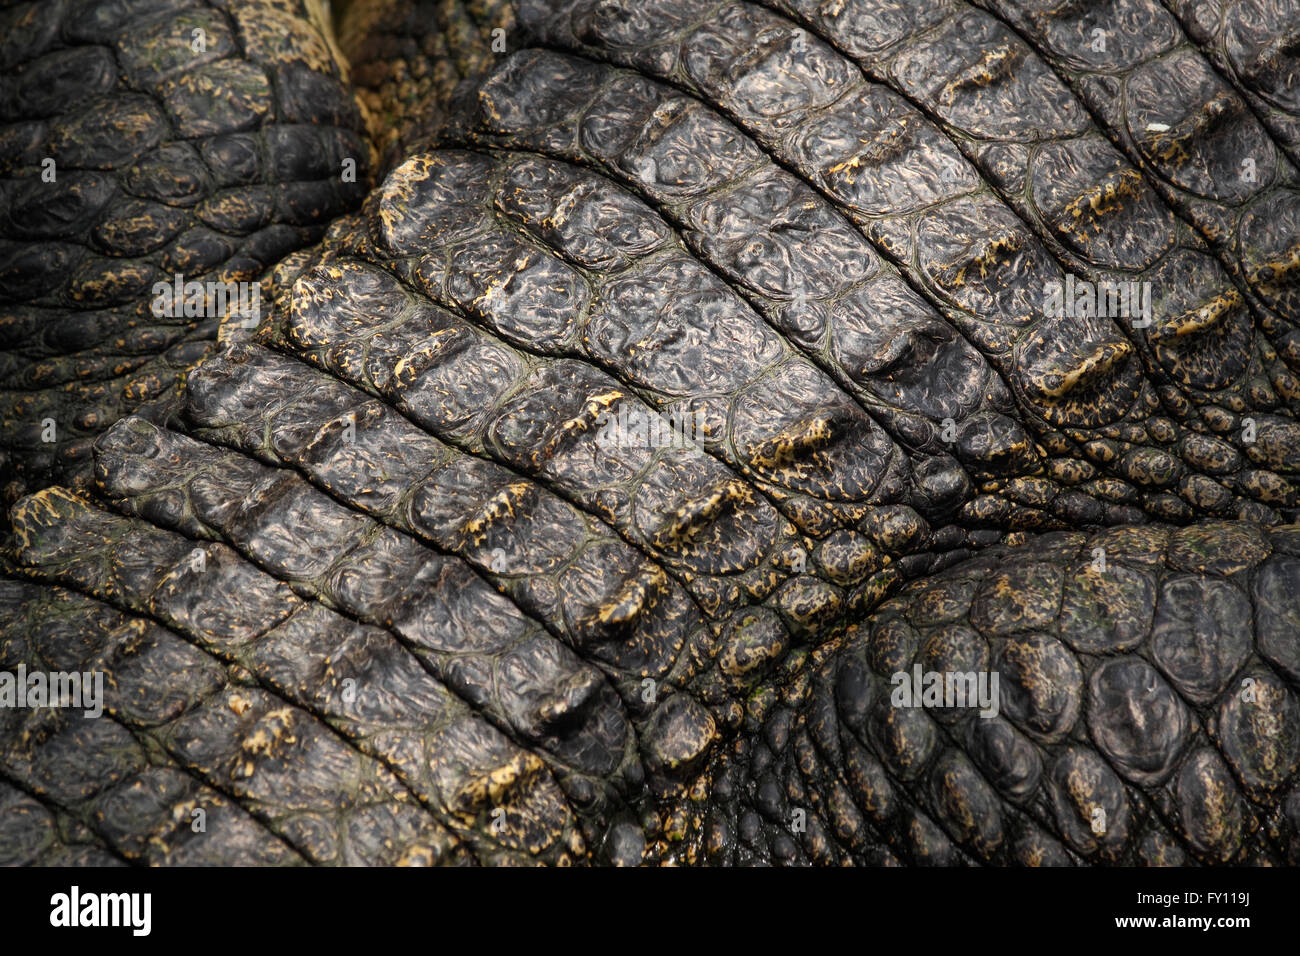 Crocodile skin detail Stock Photo